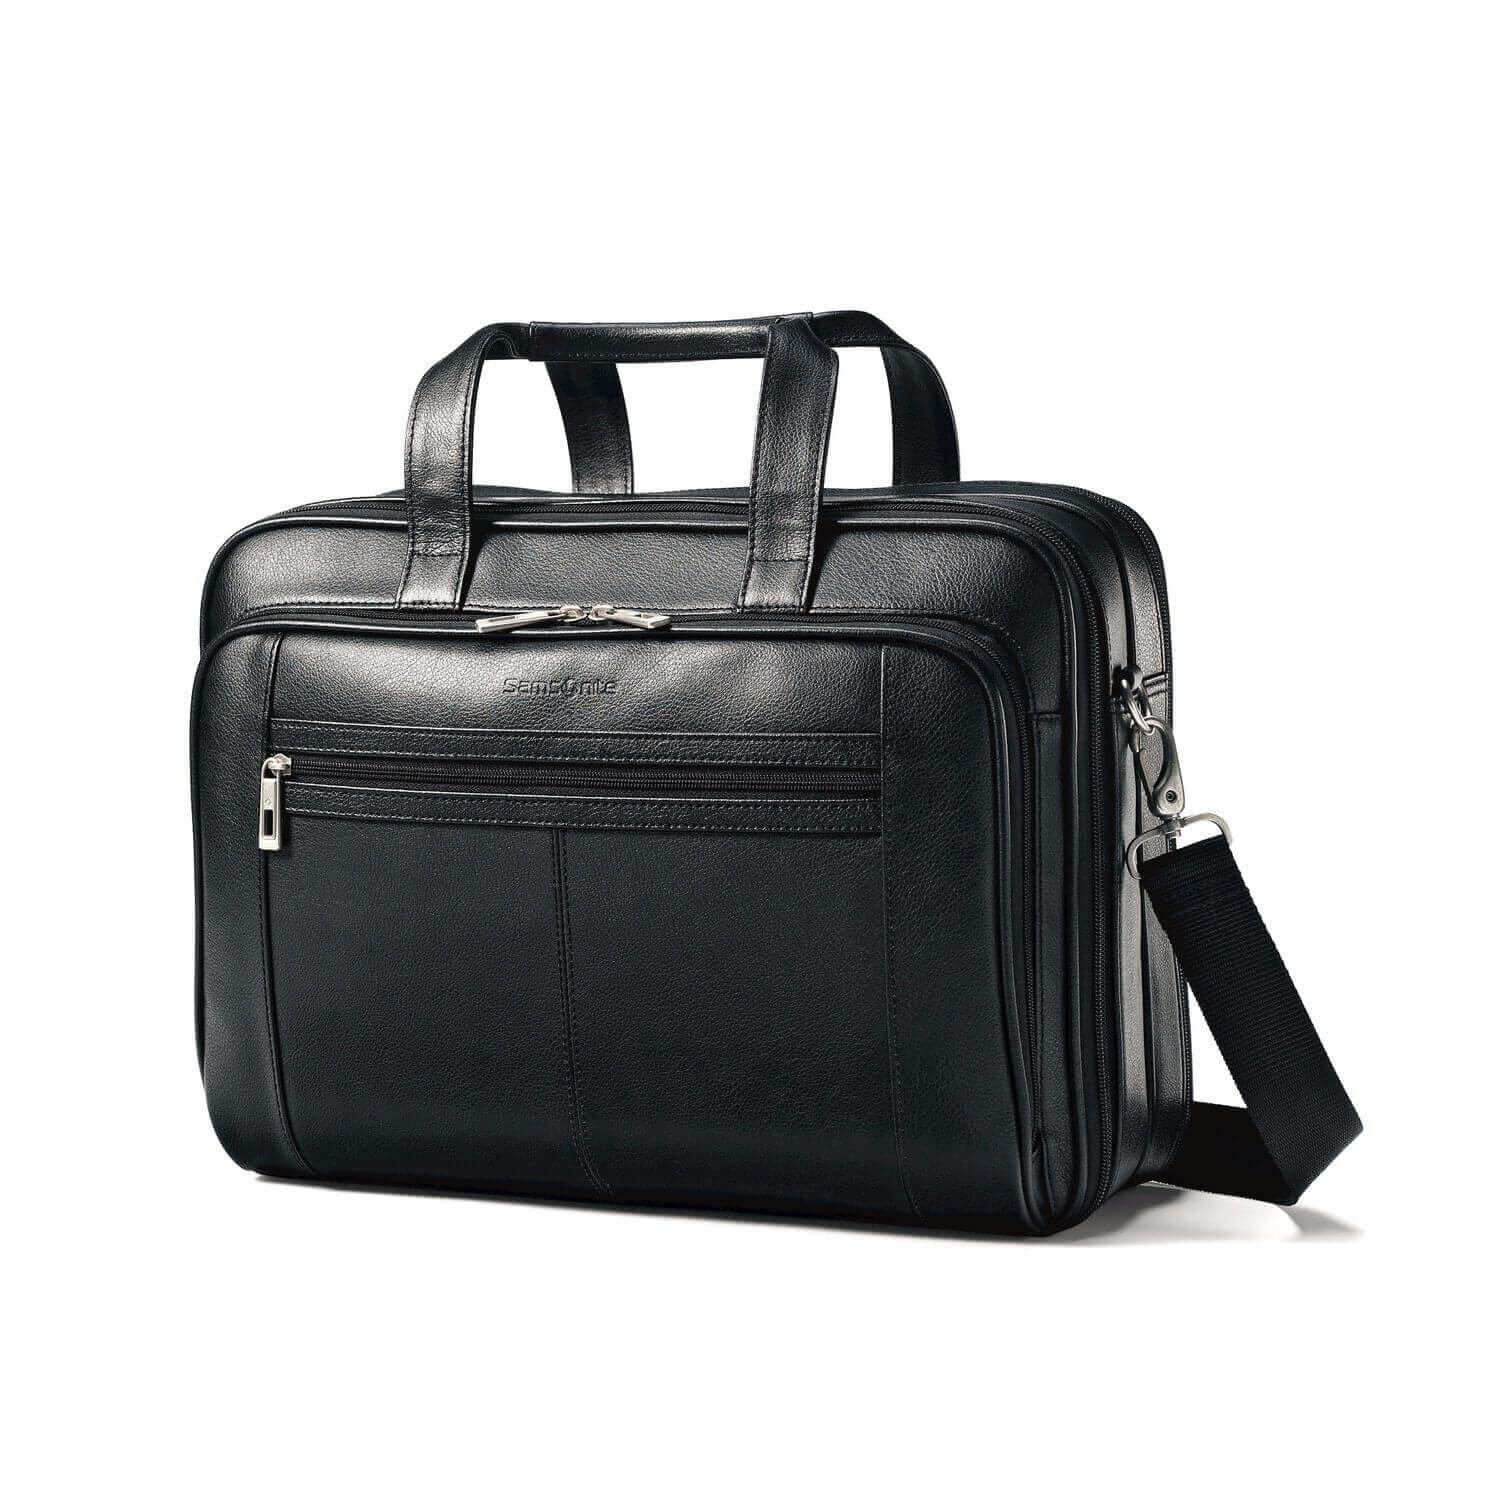 Samsonite Leather Expandable Briefcase - best leather briefcases for men